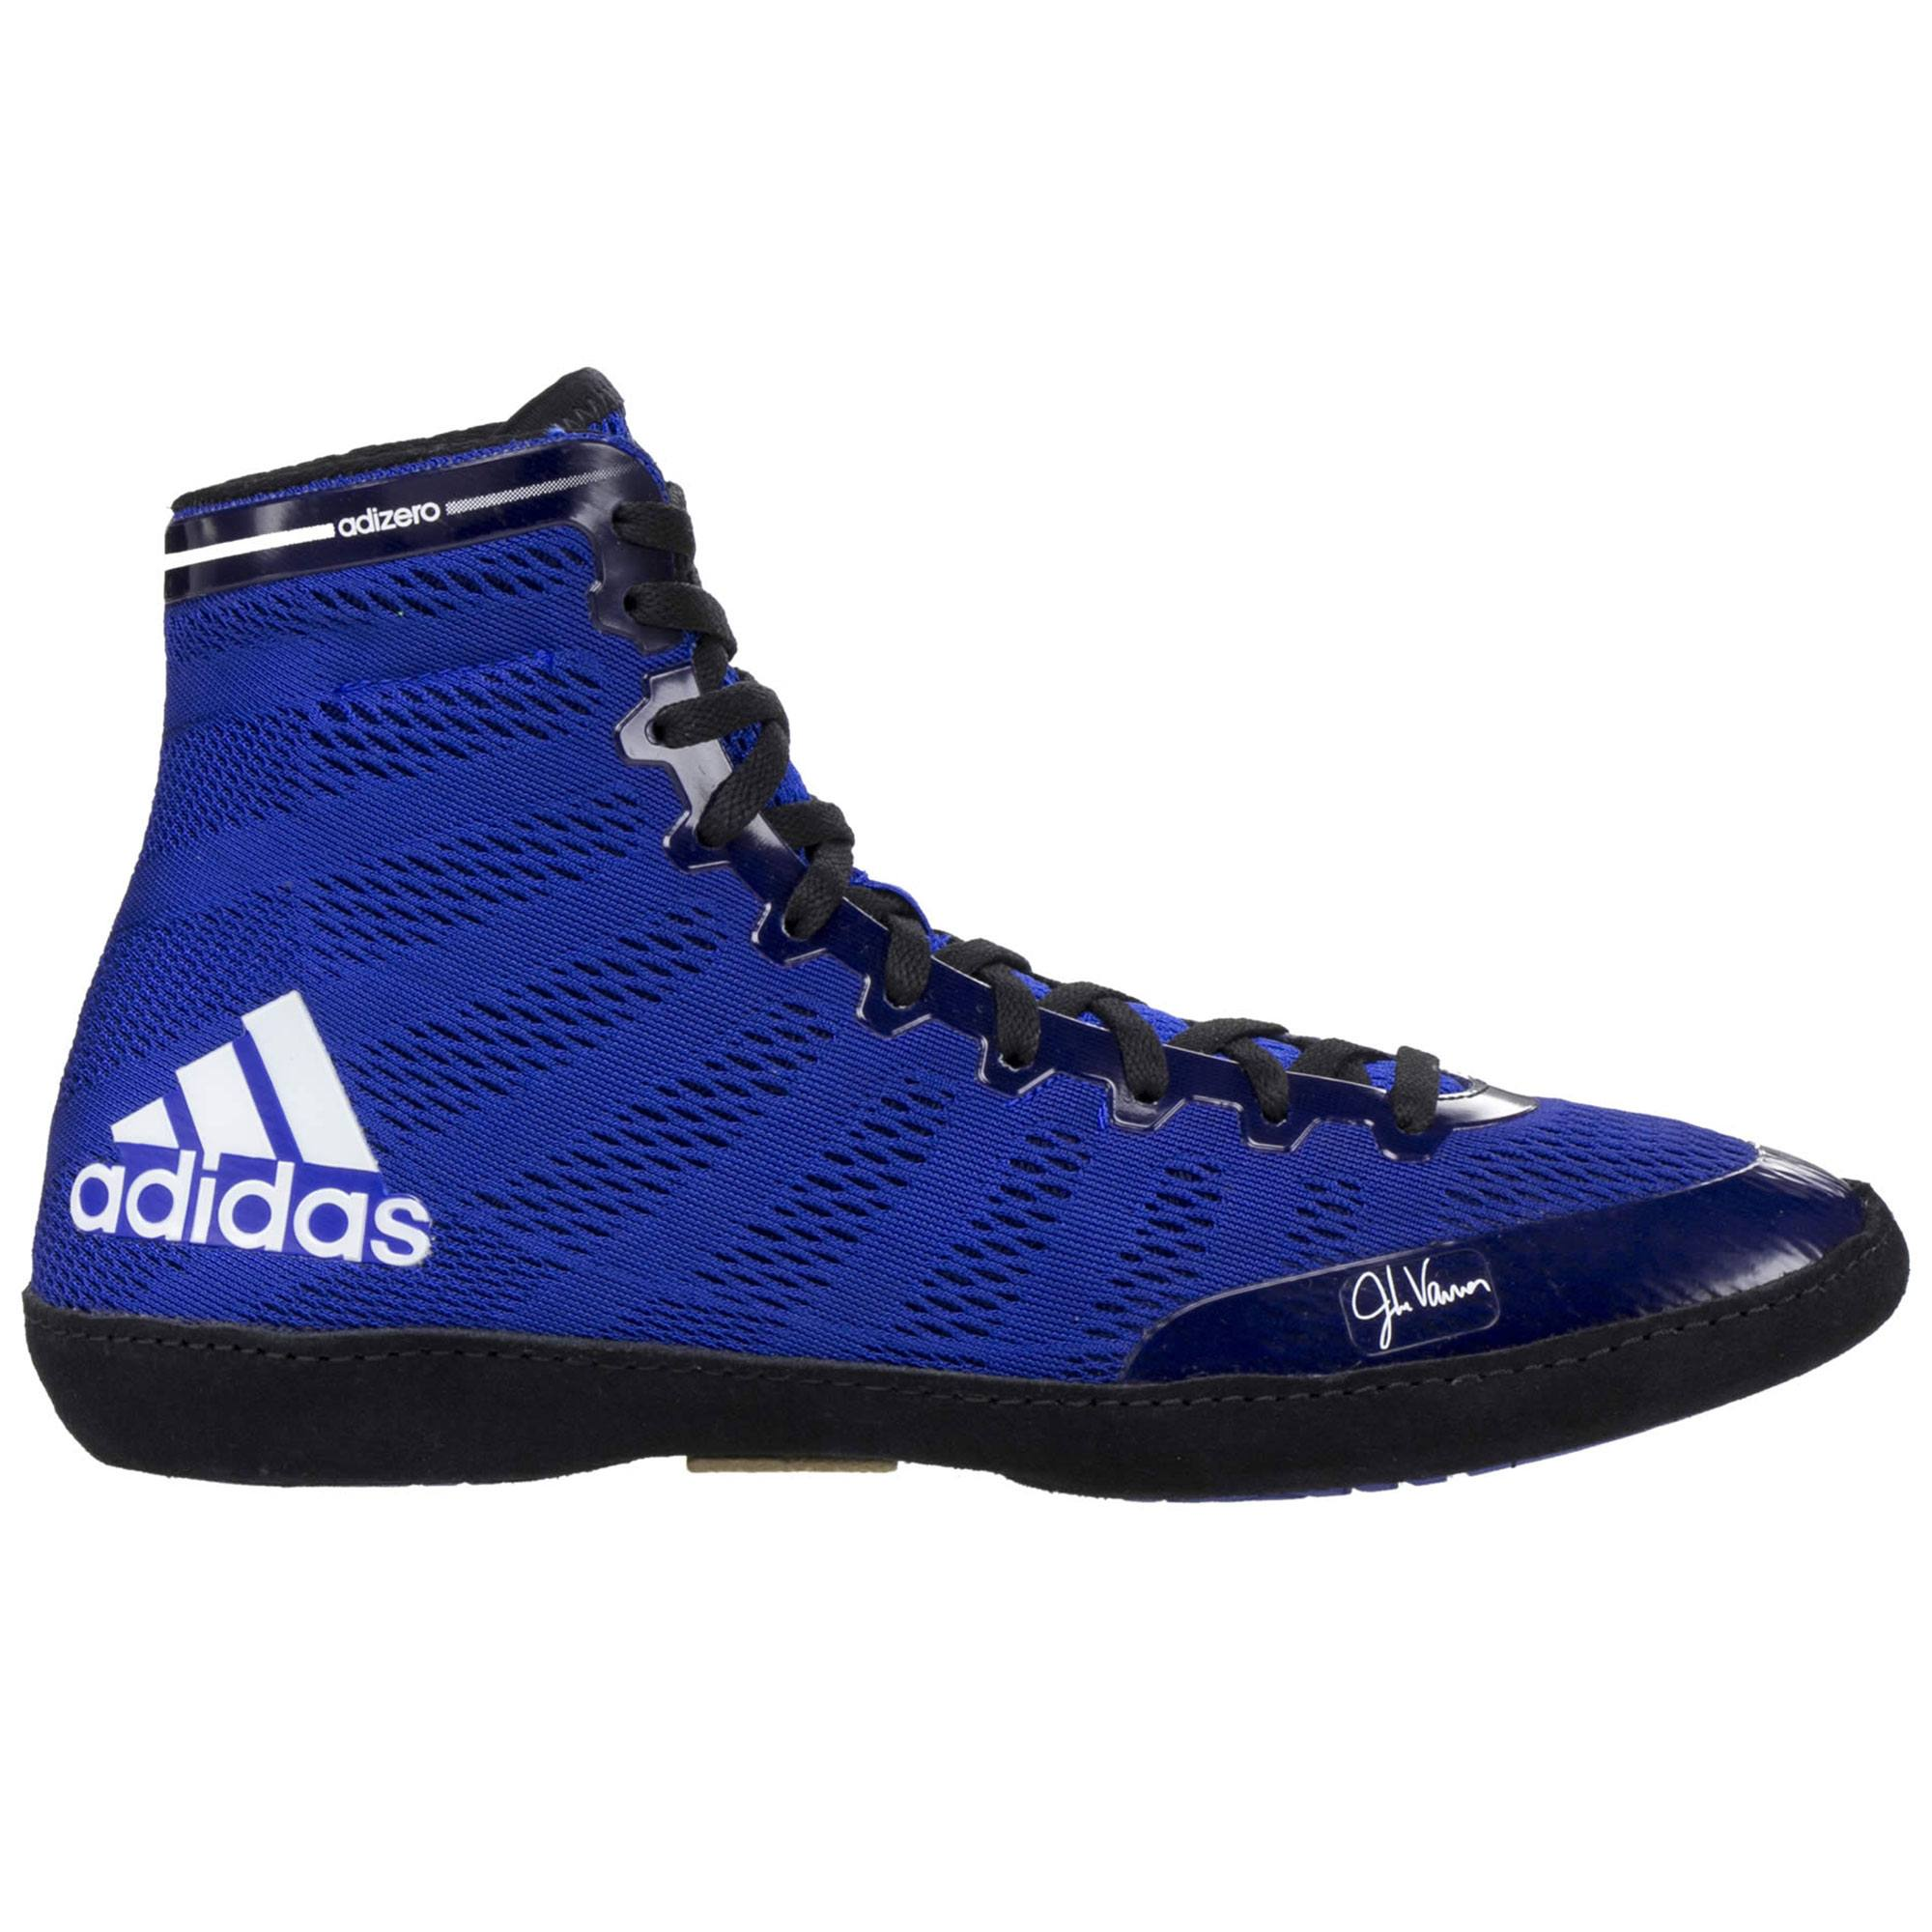 23a4b8f45c71 Adizero Varner Royal Blue Black outsideAdizero ...